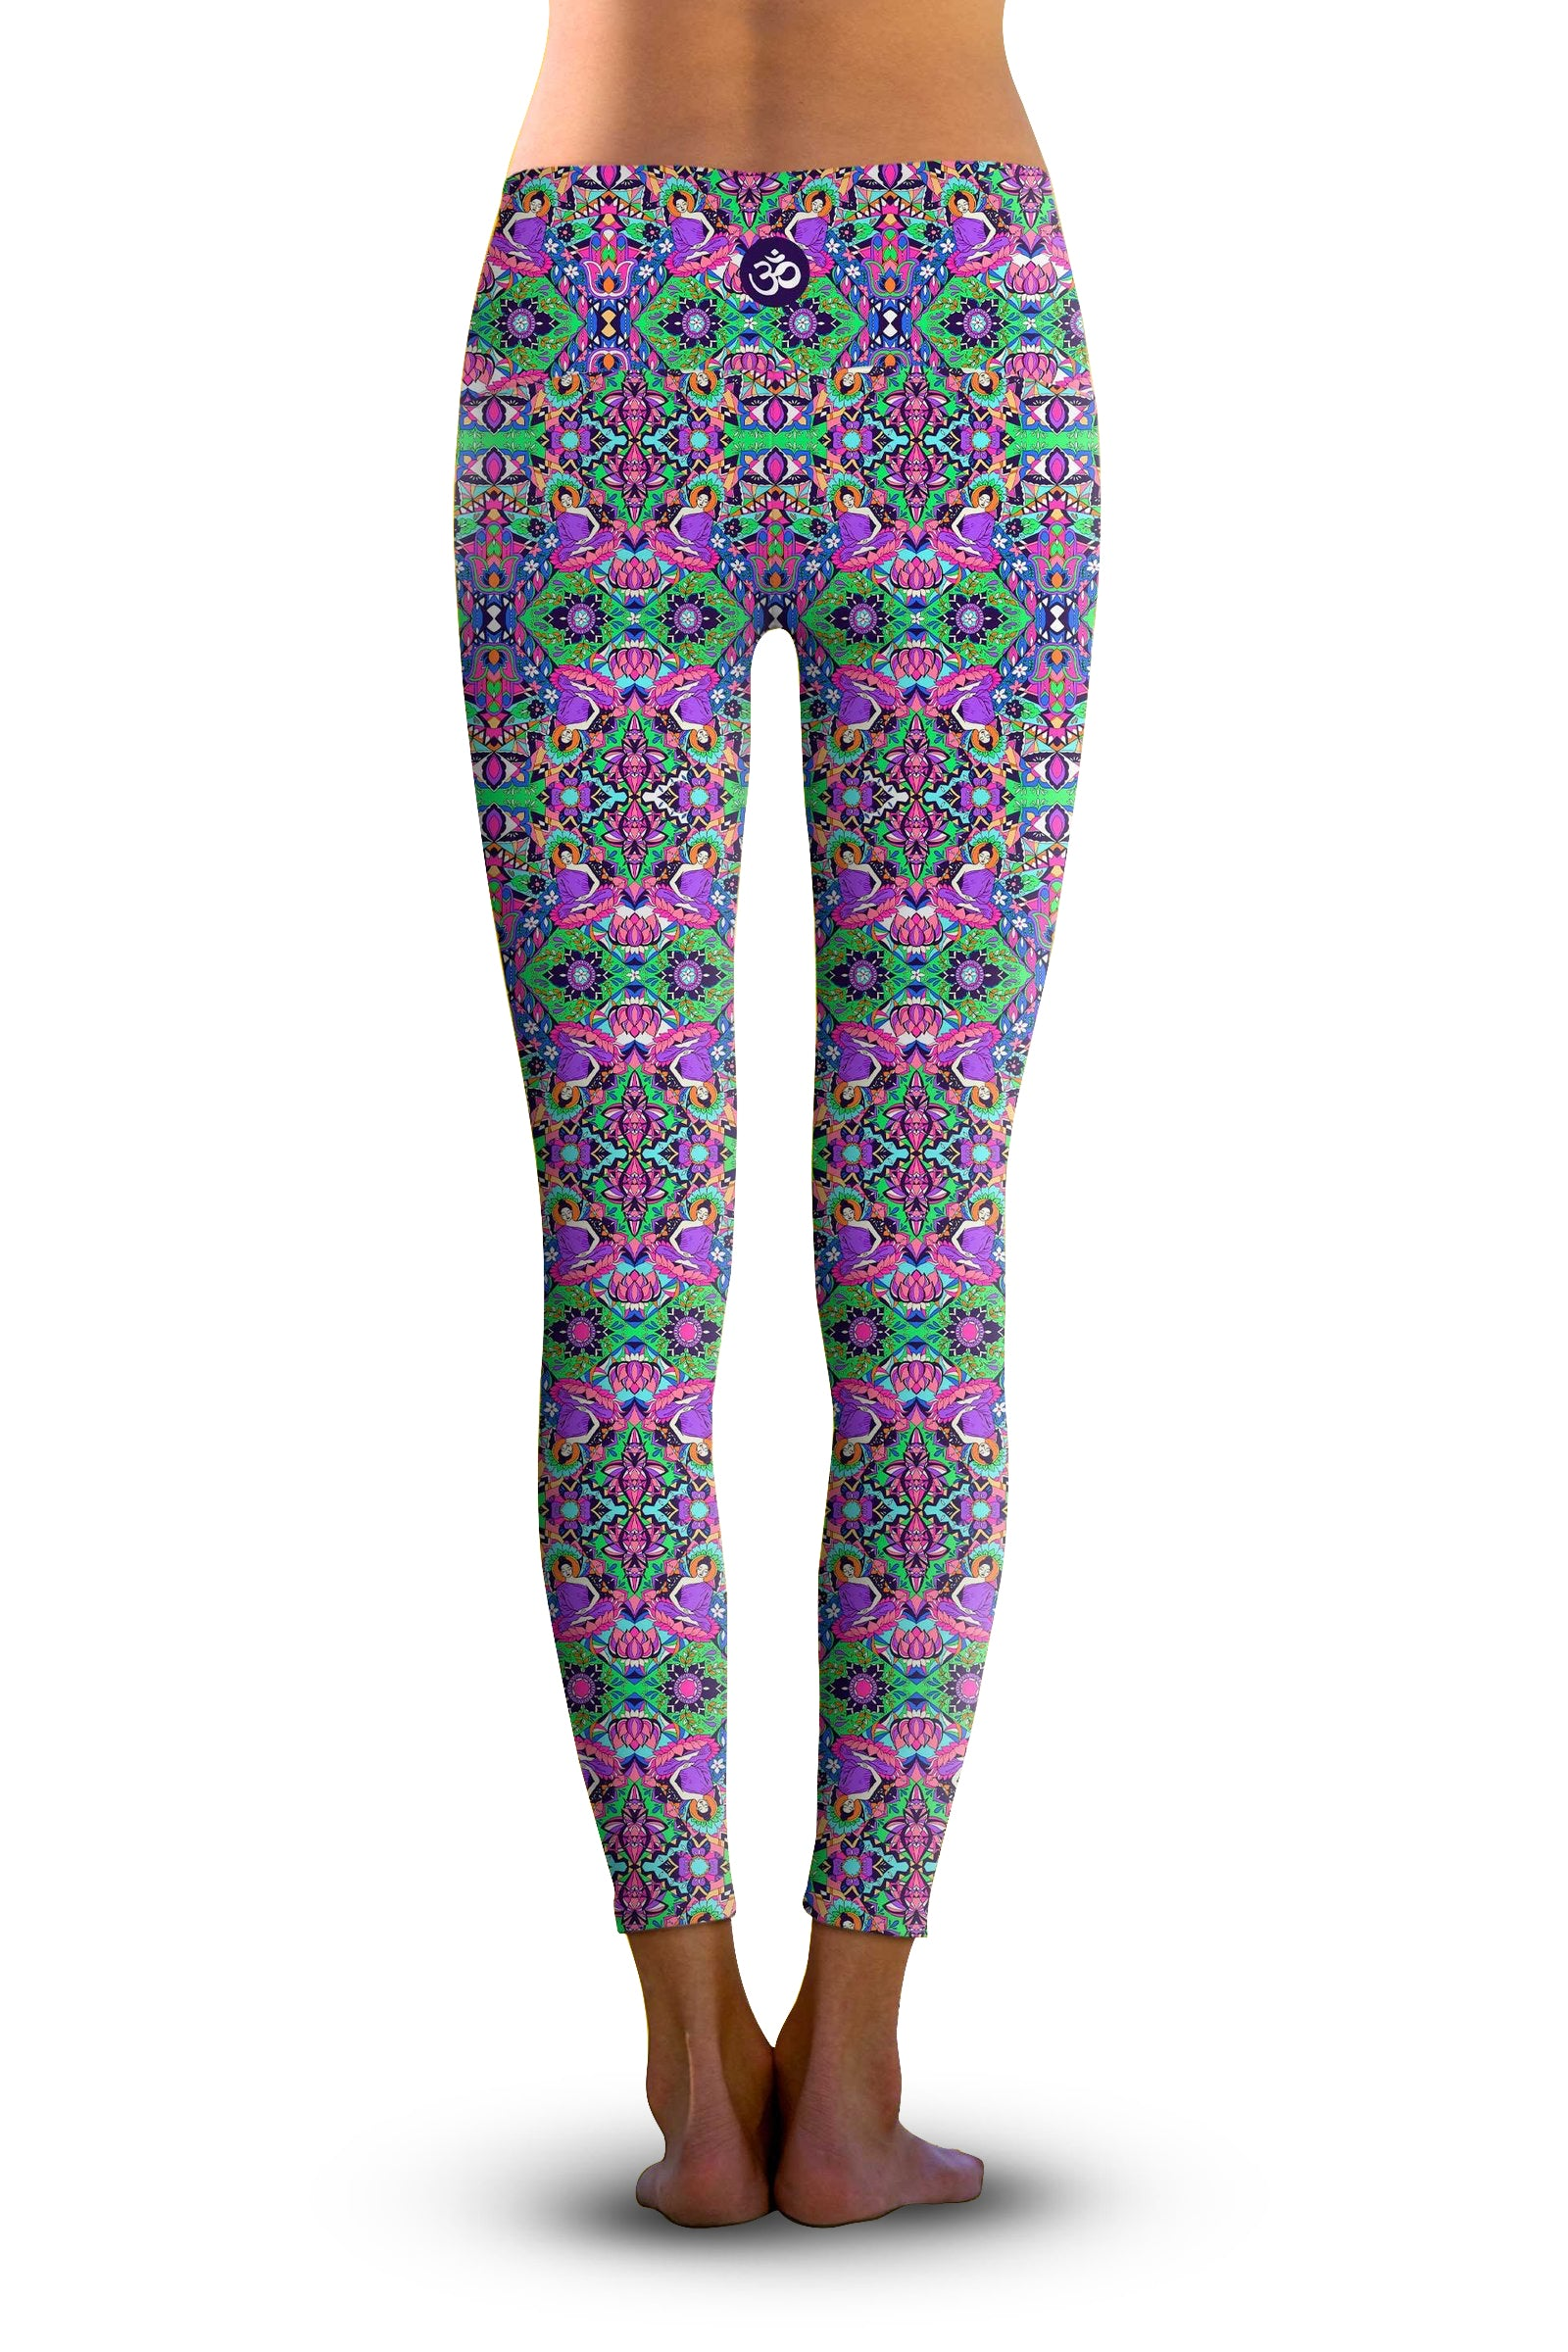 #Lotus Buddha, Eco-Friendly Active Performance Leggings